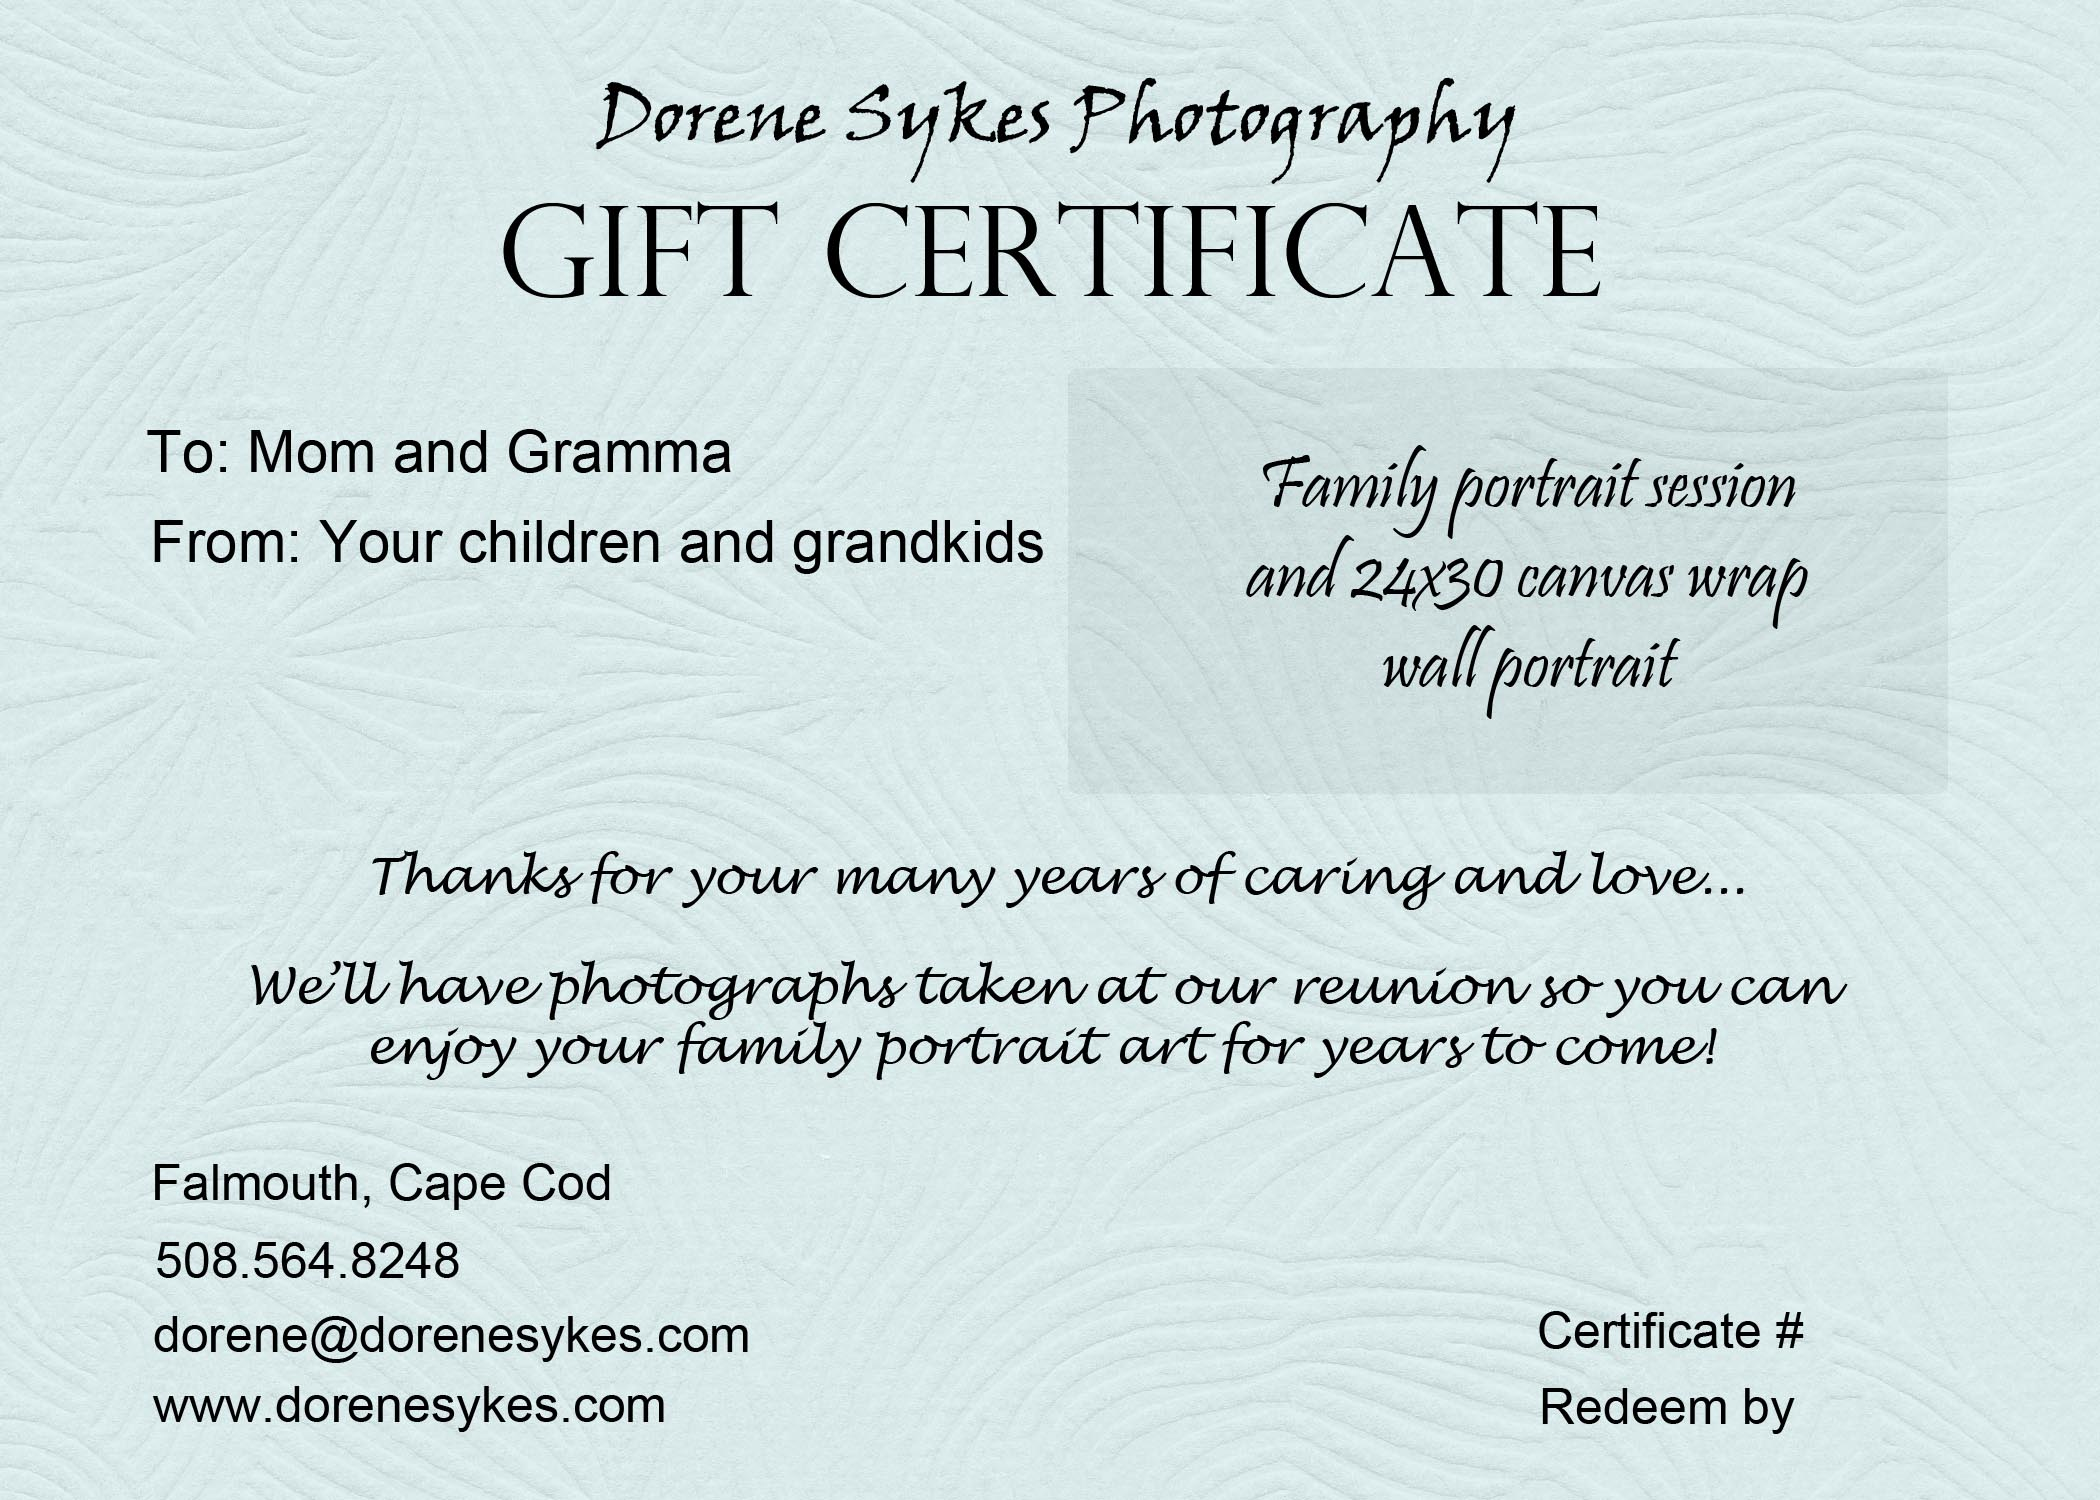 photography gift certificate template gift certificate sample gift certificate sample photography gift certificate template dimension n tk